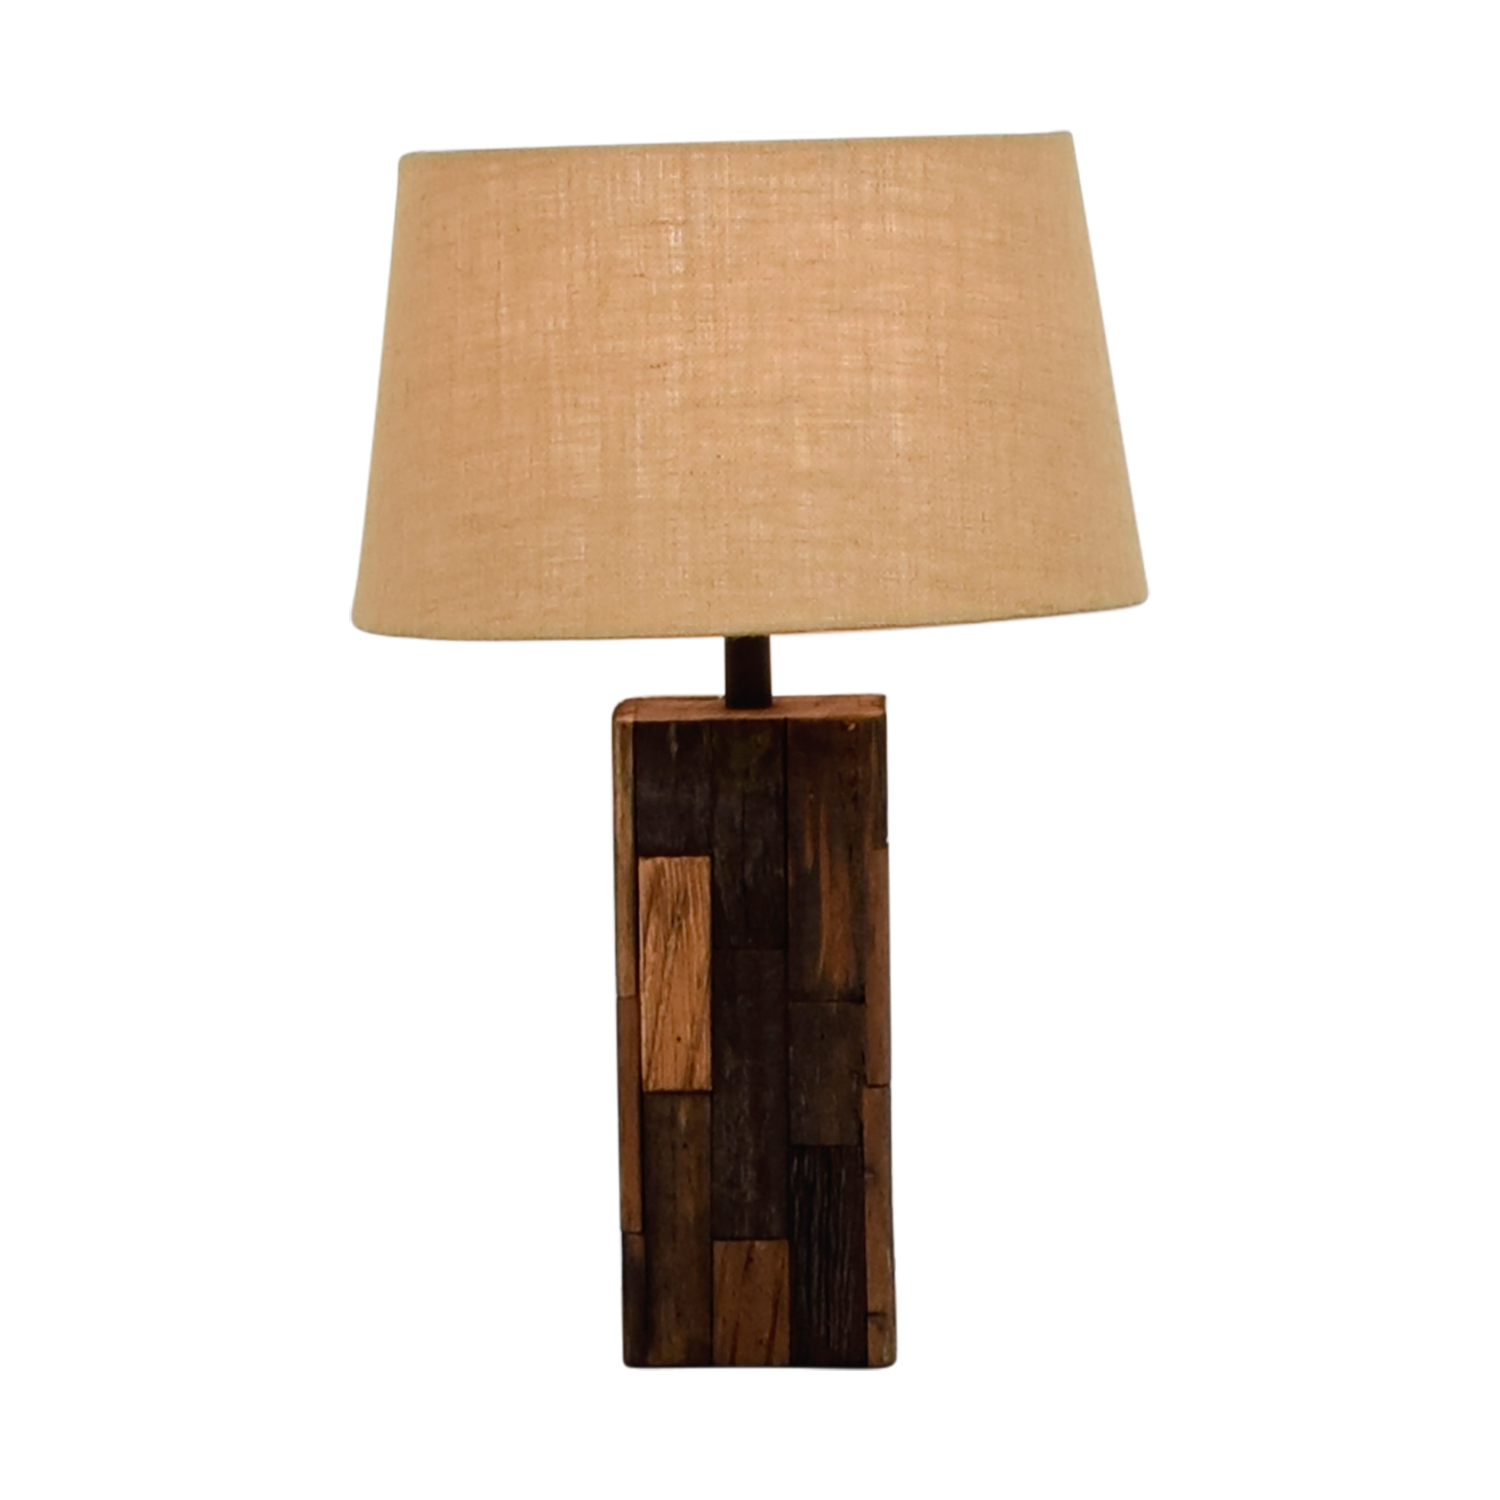 Ashley Furniture Ashley Furniture Selemah Wood Table Lamp for sale